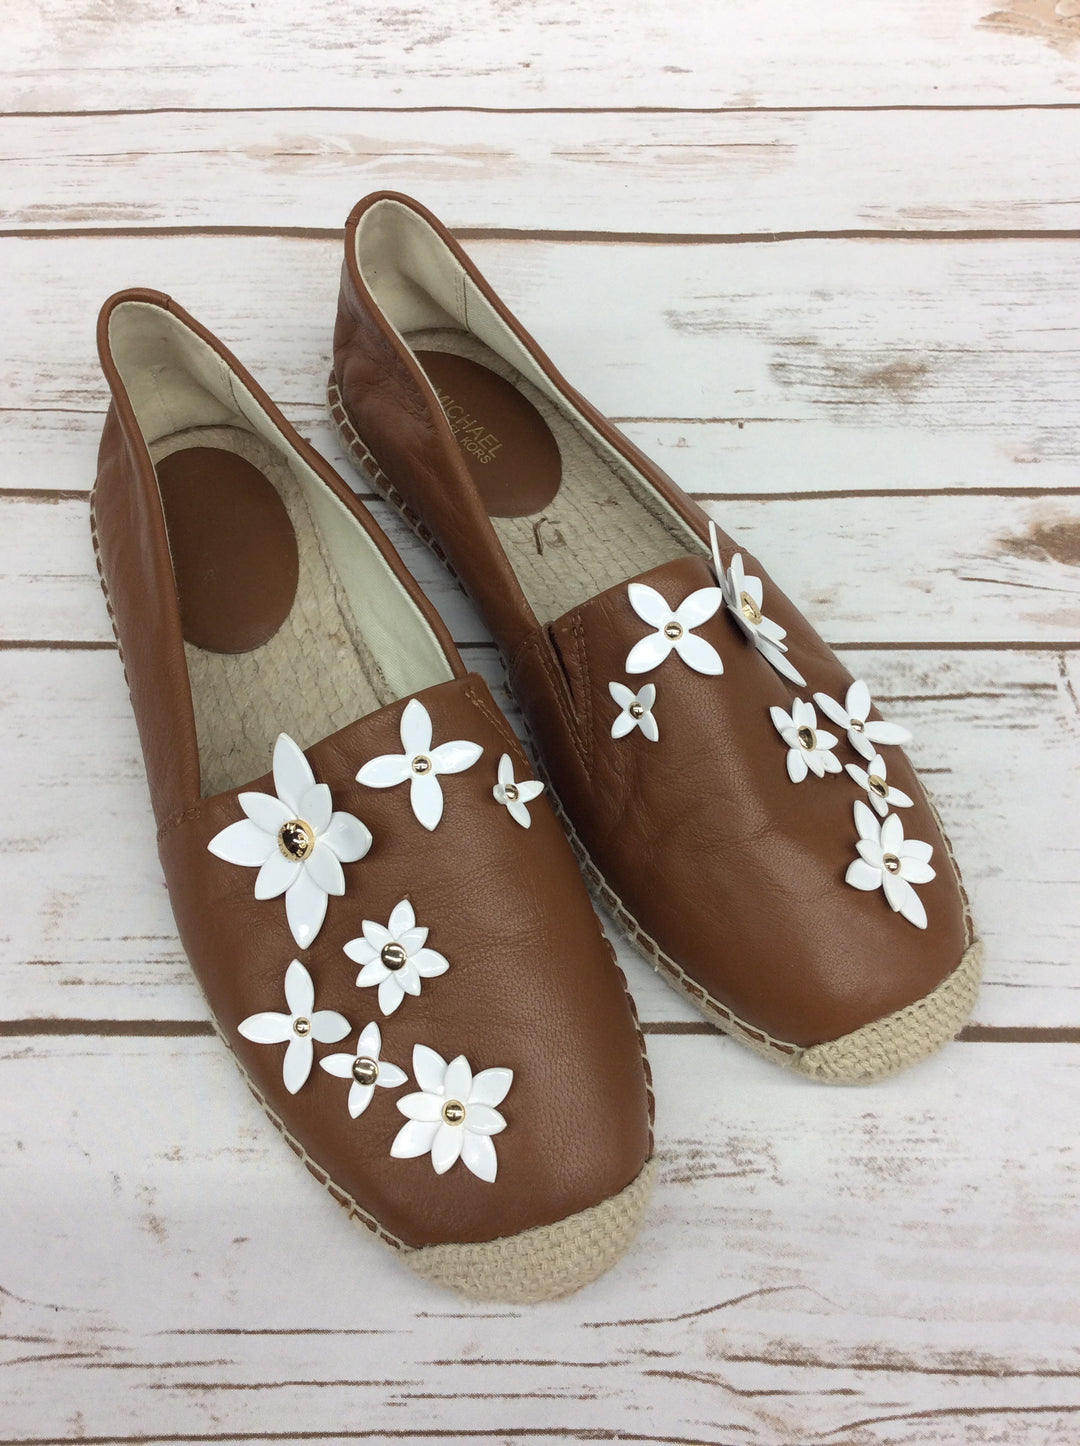 Primary Photo - BRAND: MICHAEL BY MICHAEL KORS <BR>STYLE: SHOES FLATS <BR>COLOR: CAMEL <BR>SIZE: 9 <BR>SKU: 220-220120-7179